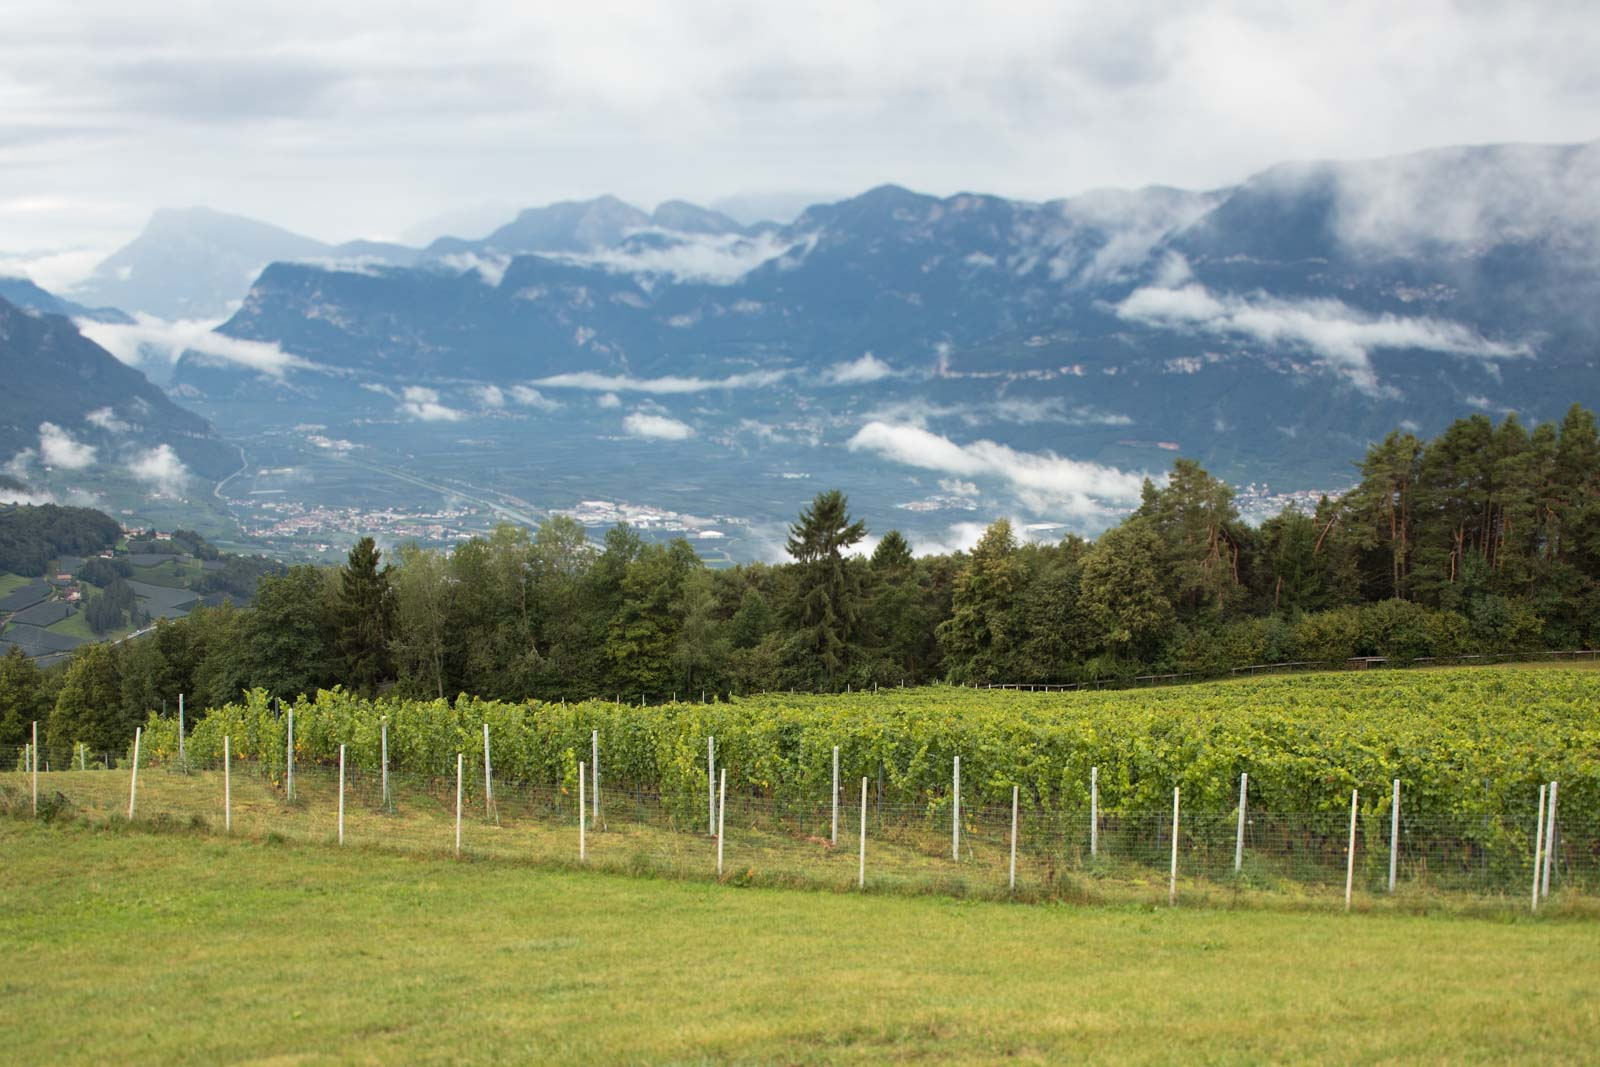 As climate change forces vineyard plantings higher and higher into the mountains, whose place do they take: pastureland or forest? And what are the impacts? ©Kevin Day/Opening a Bottle